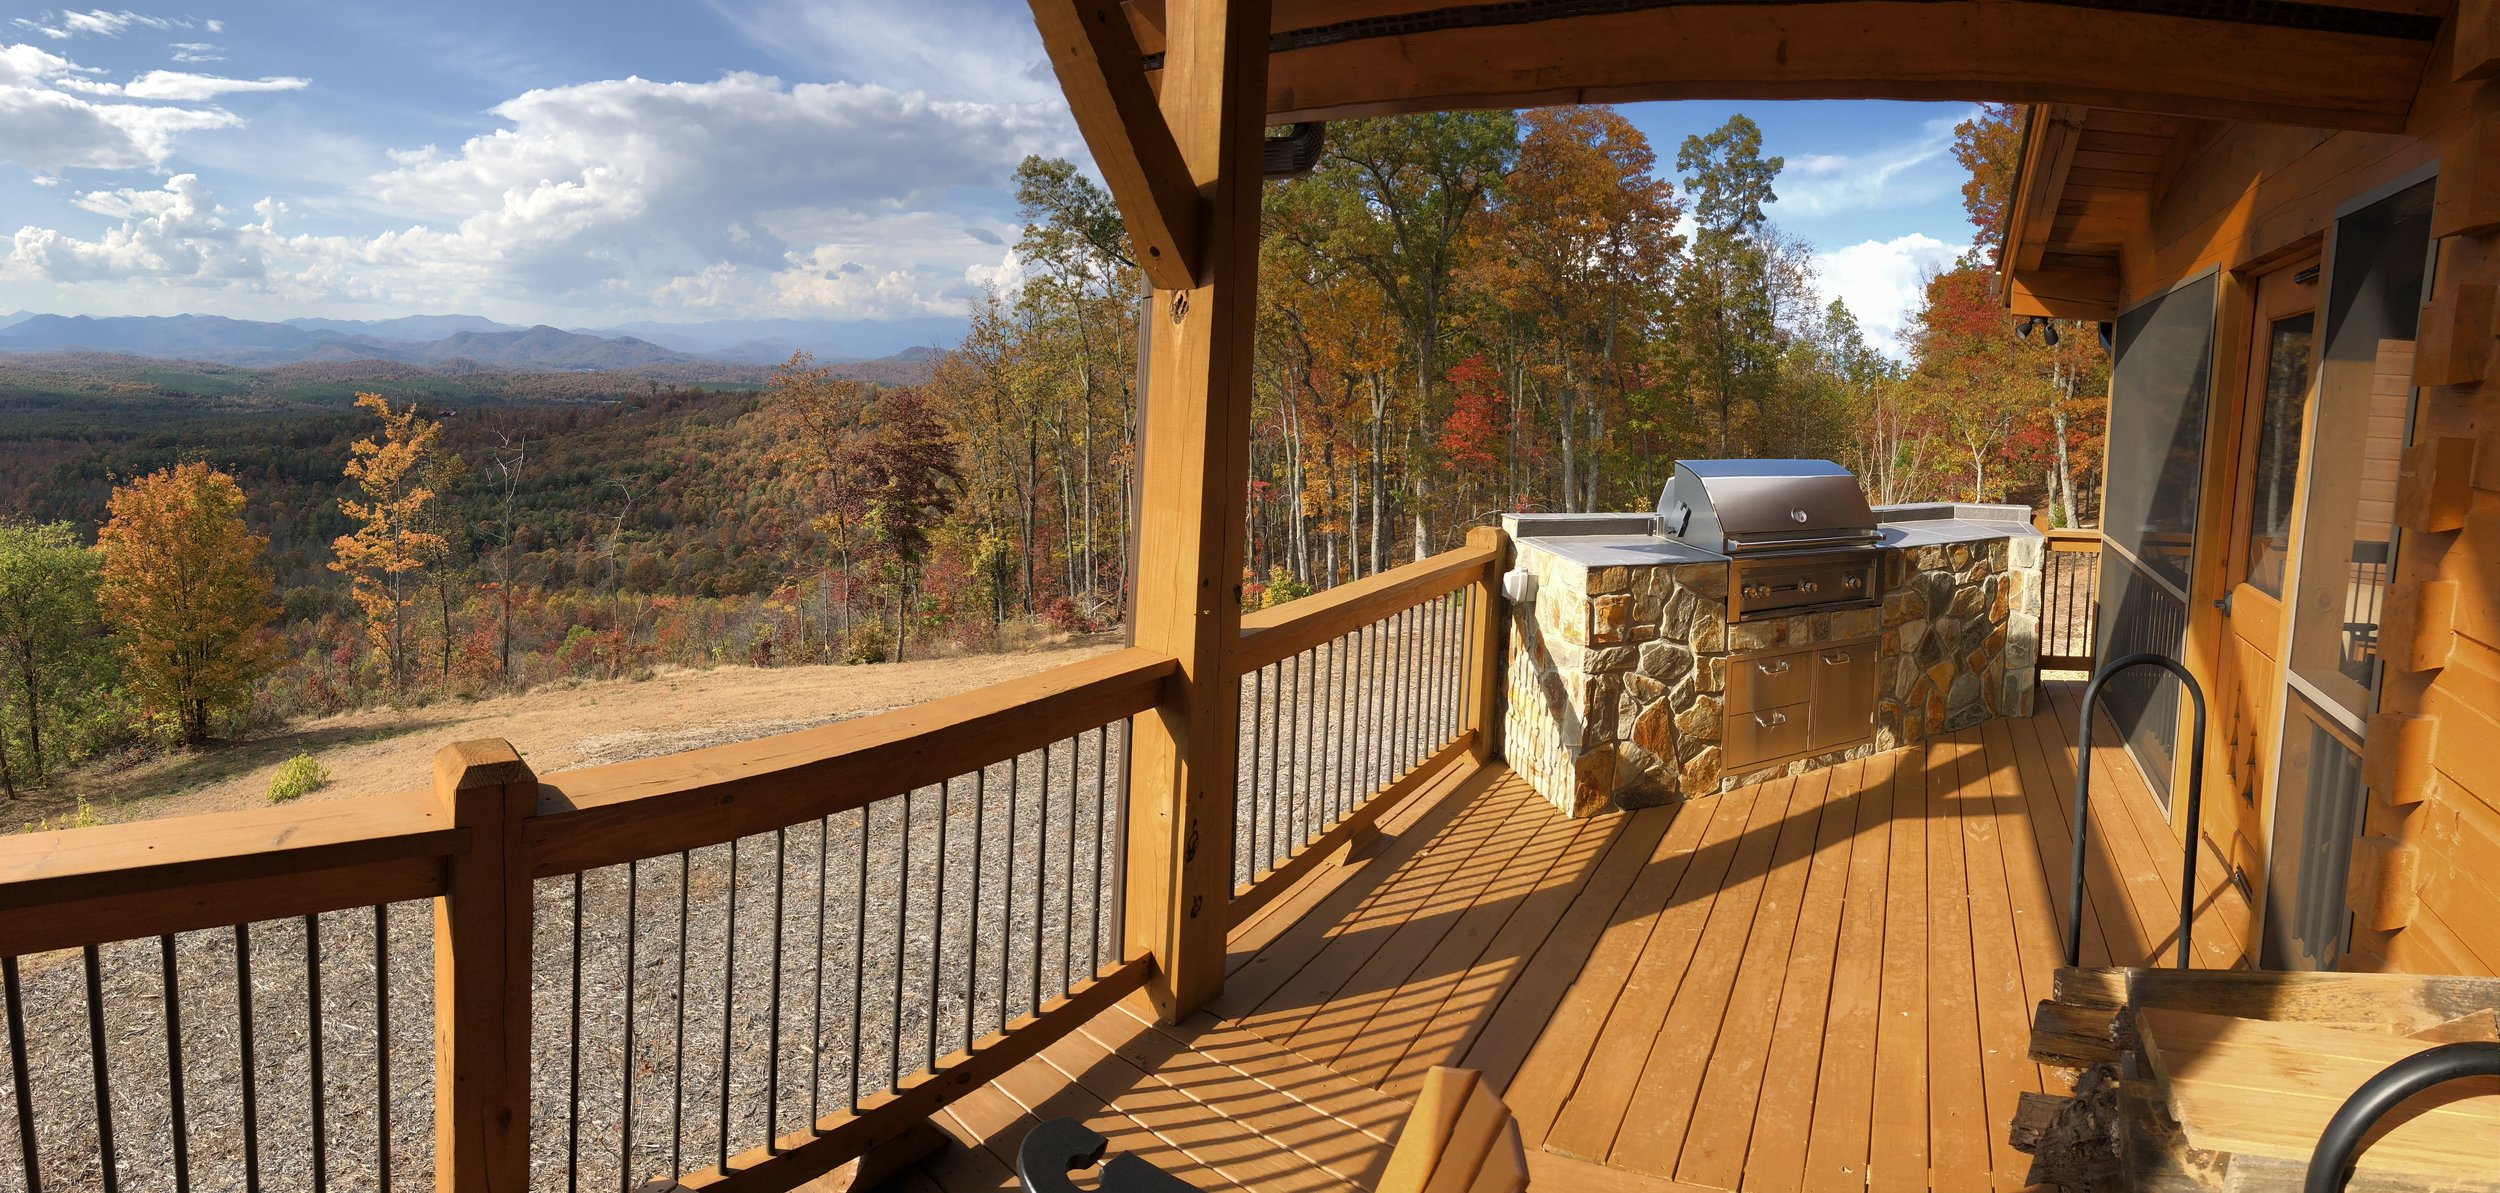 View104 rental features a wraparound porch with views of the Blue Ridge Mountains and outdoor grilling station